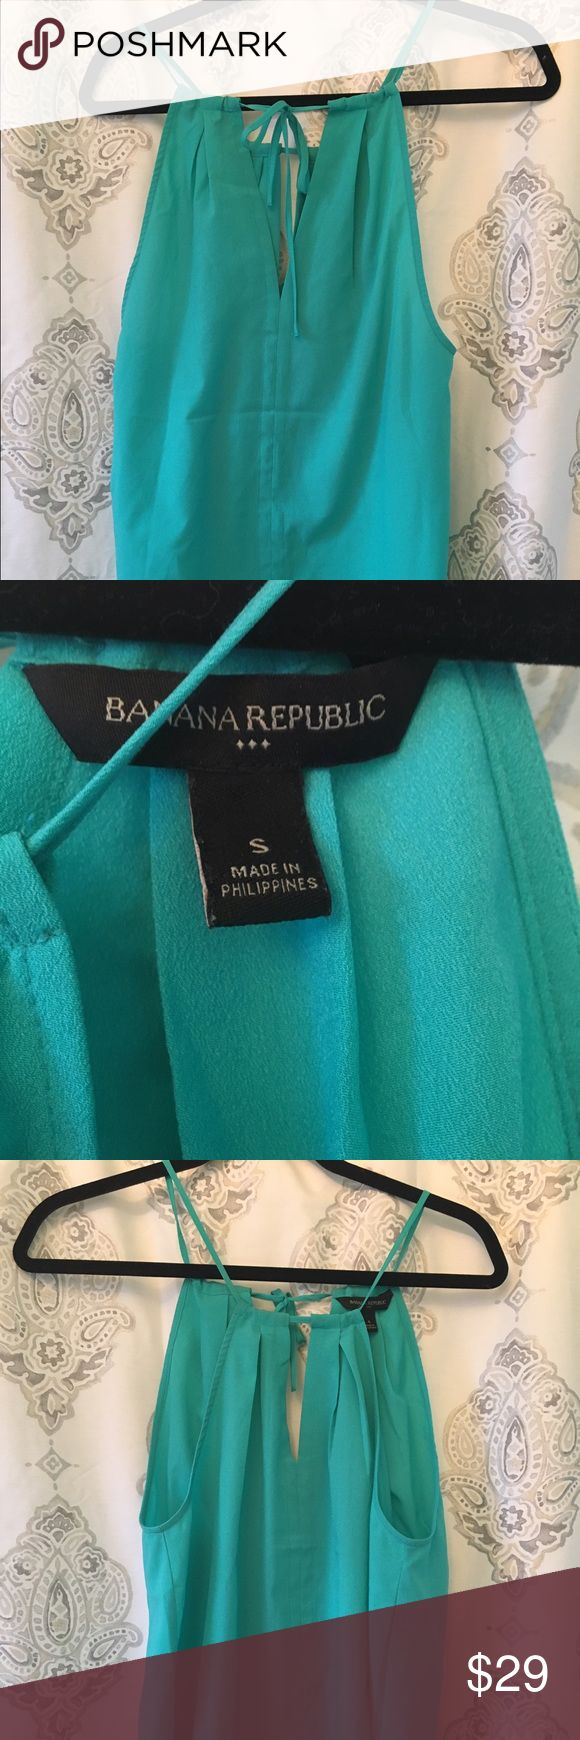 Banana Republic Teal tie top Never worn! Banana republic top that ties in the back! Such a fun and flirty top that is perfect for warm spring and summer nights out! Banana Republic Tops Tank Tops